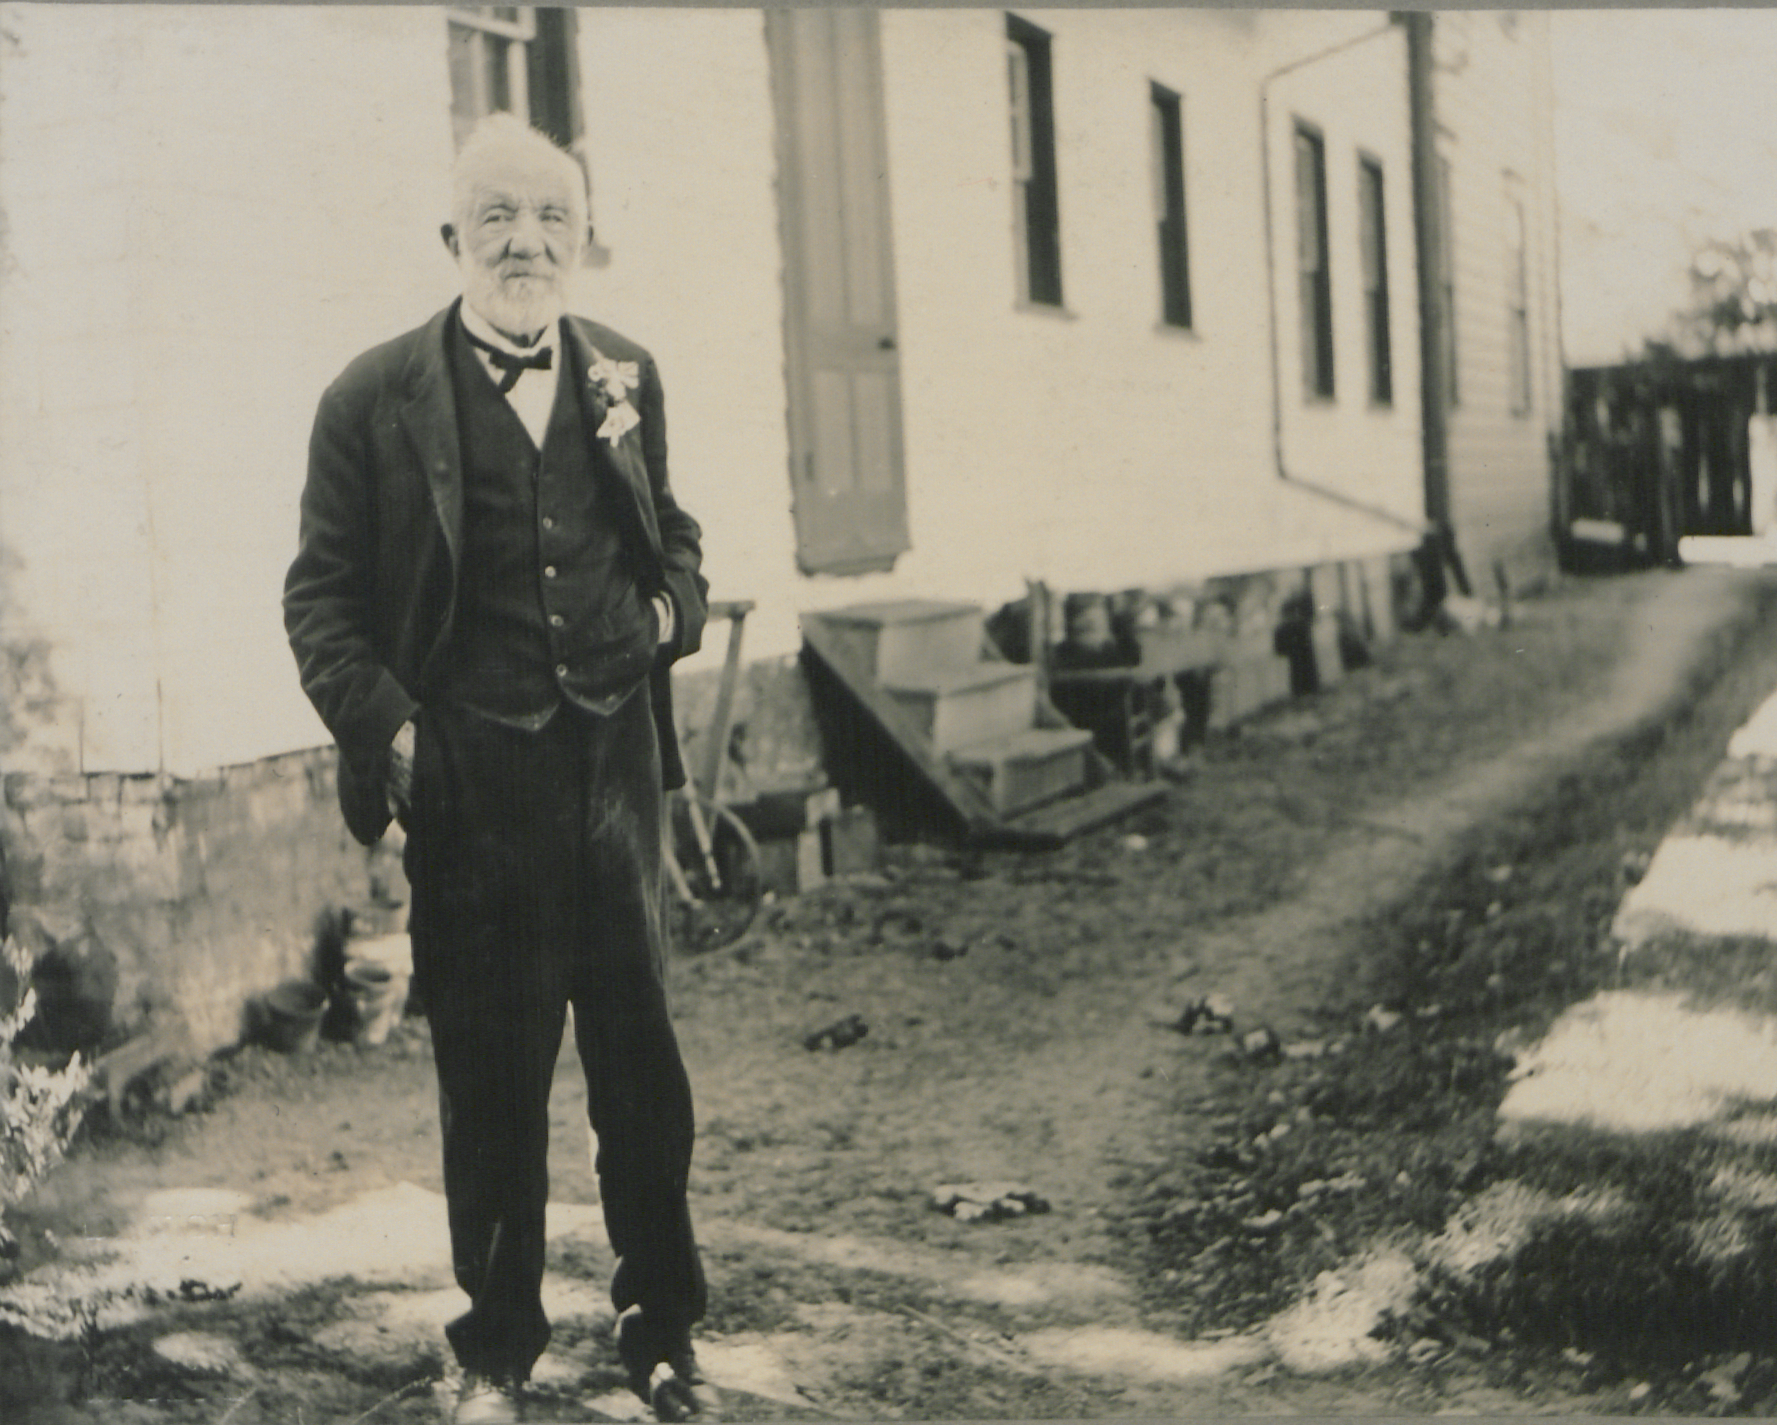 Old man in a suit stands outside a house on a dirt road.